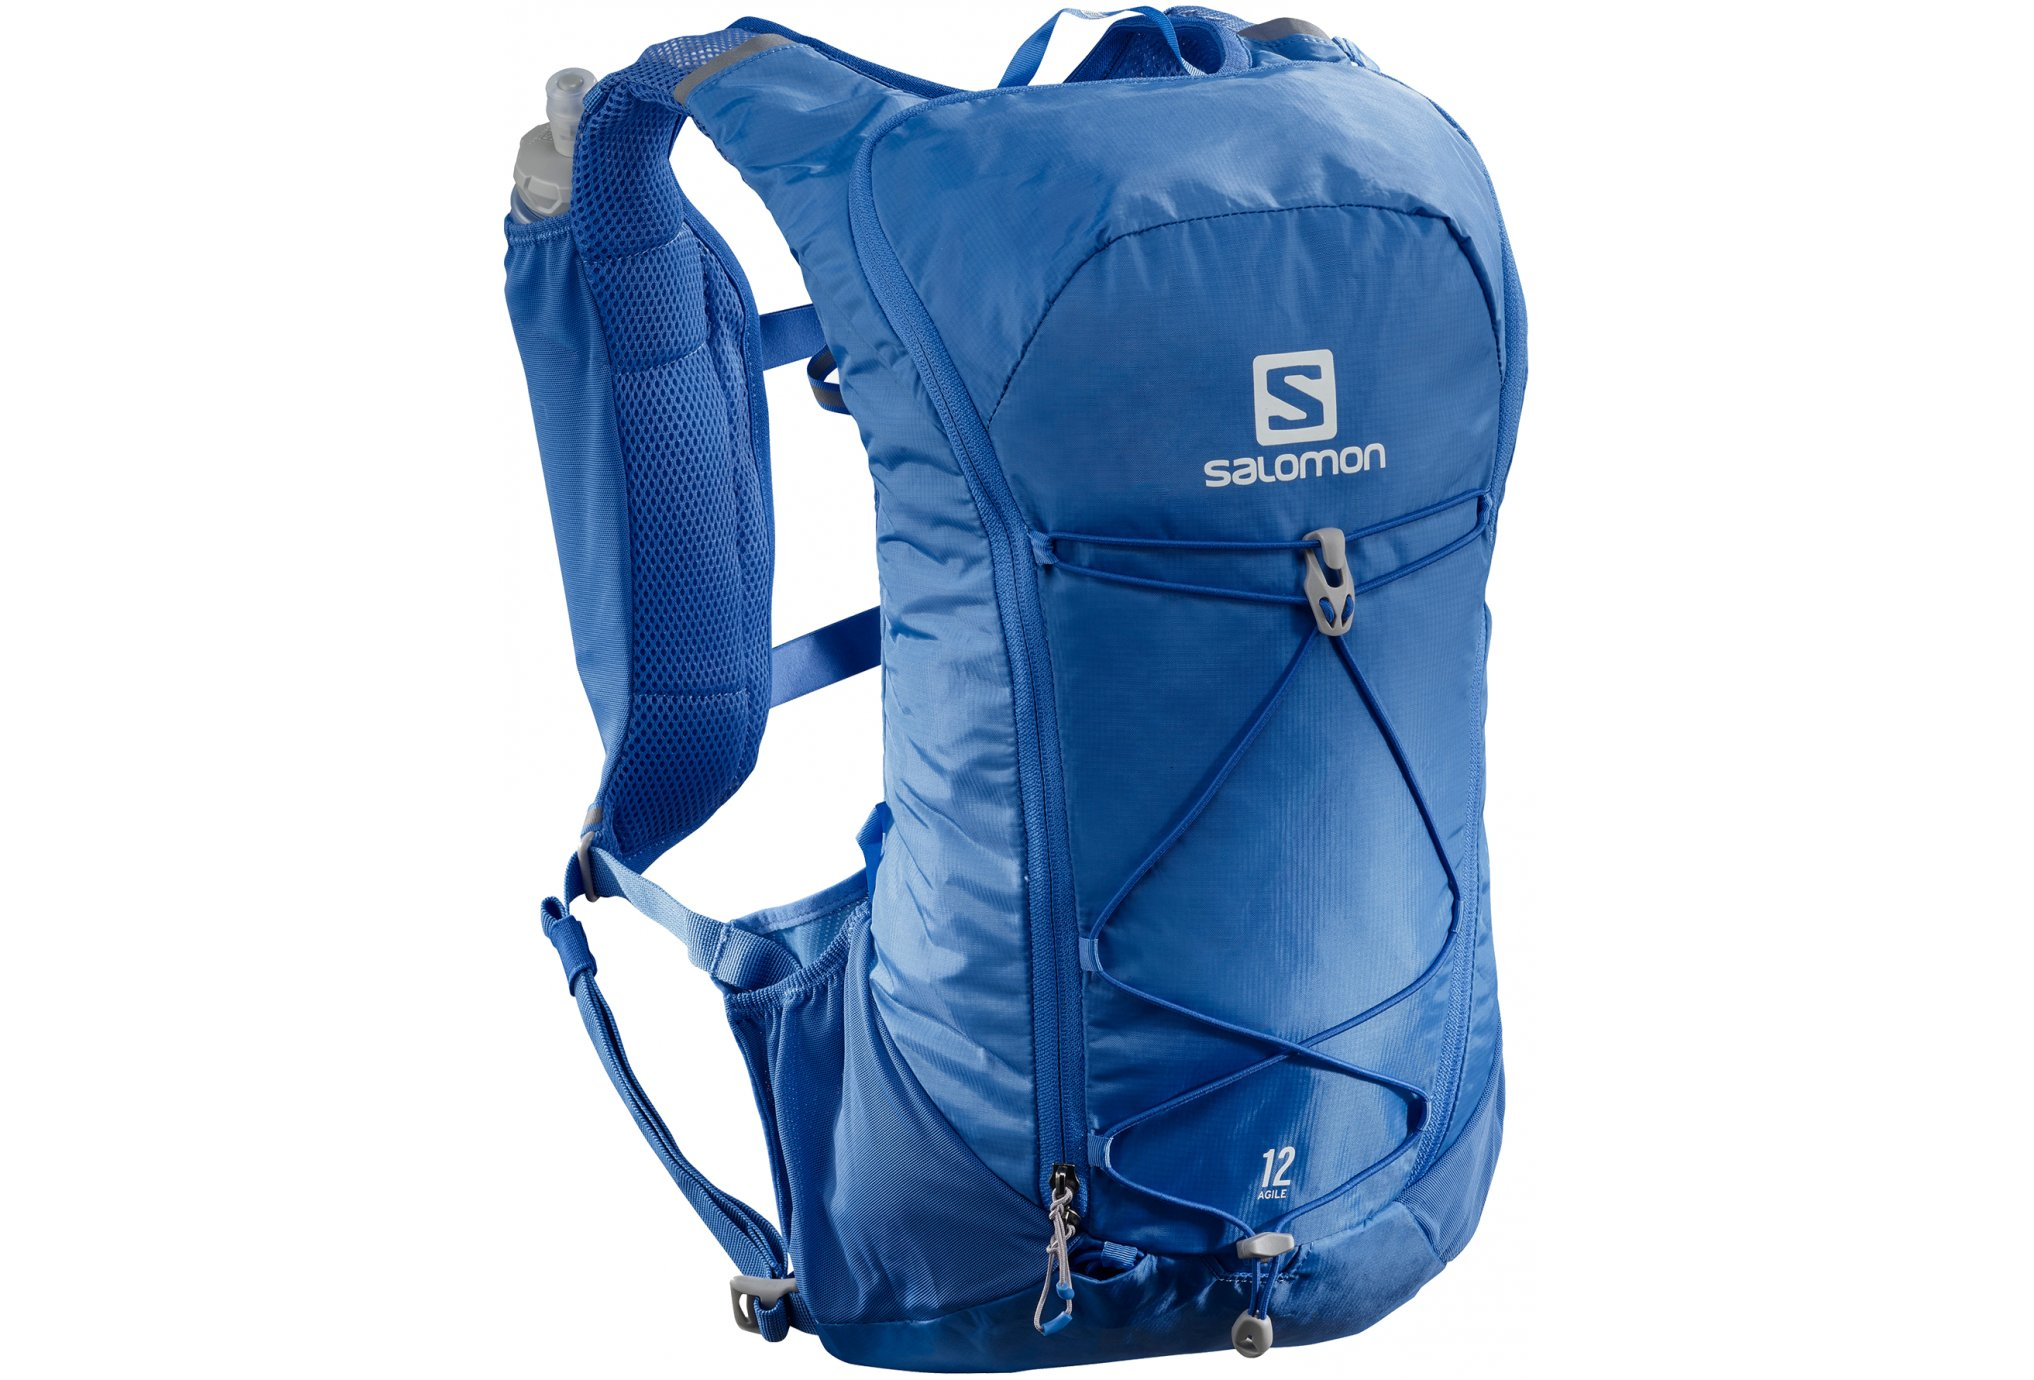 Salomon Agile 12 SET Sac hydratation / Gourde